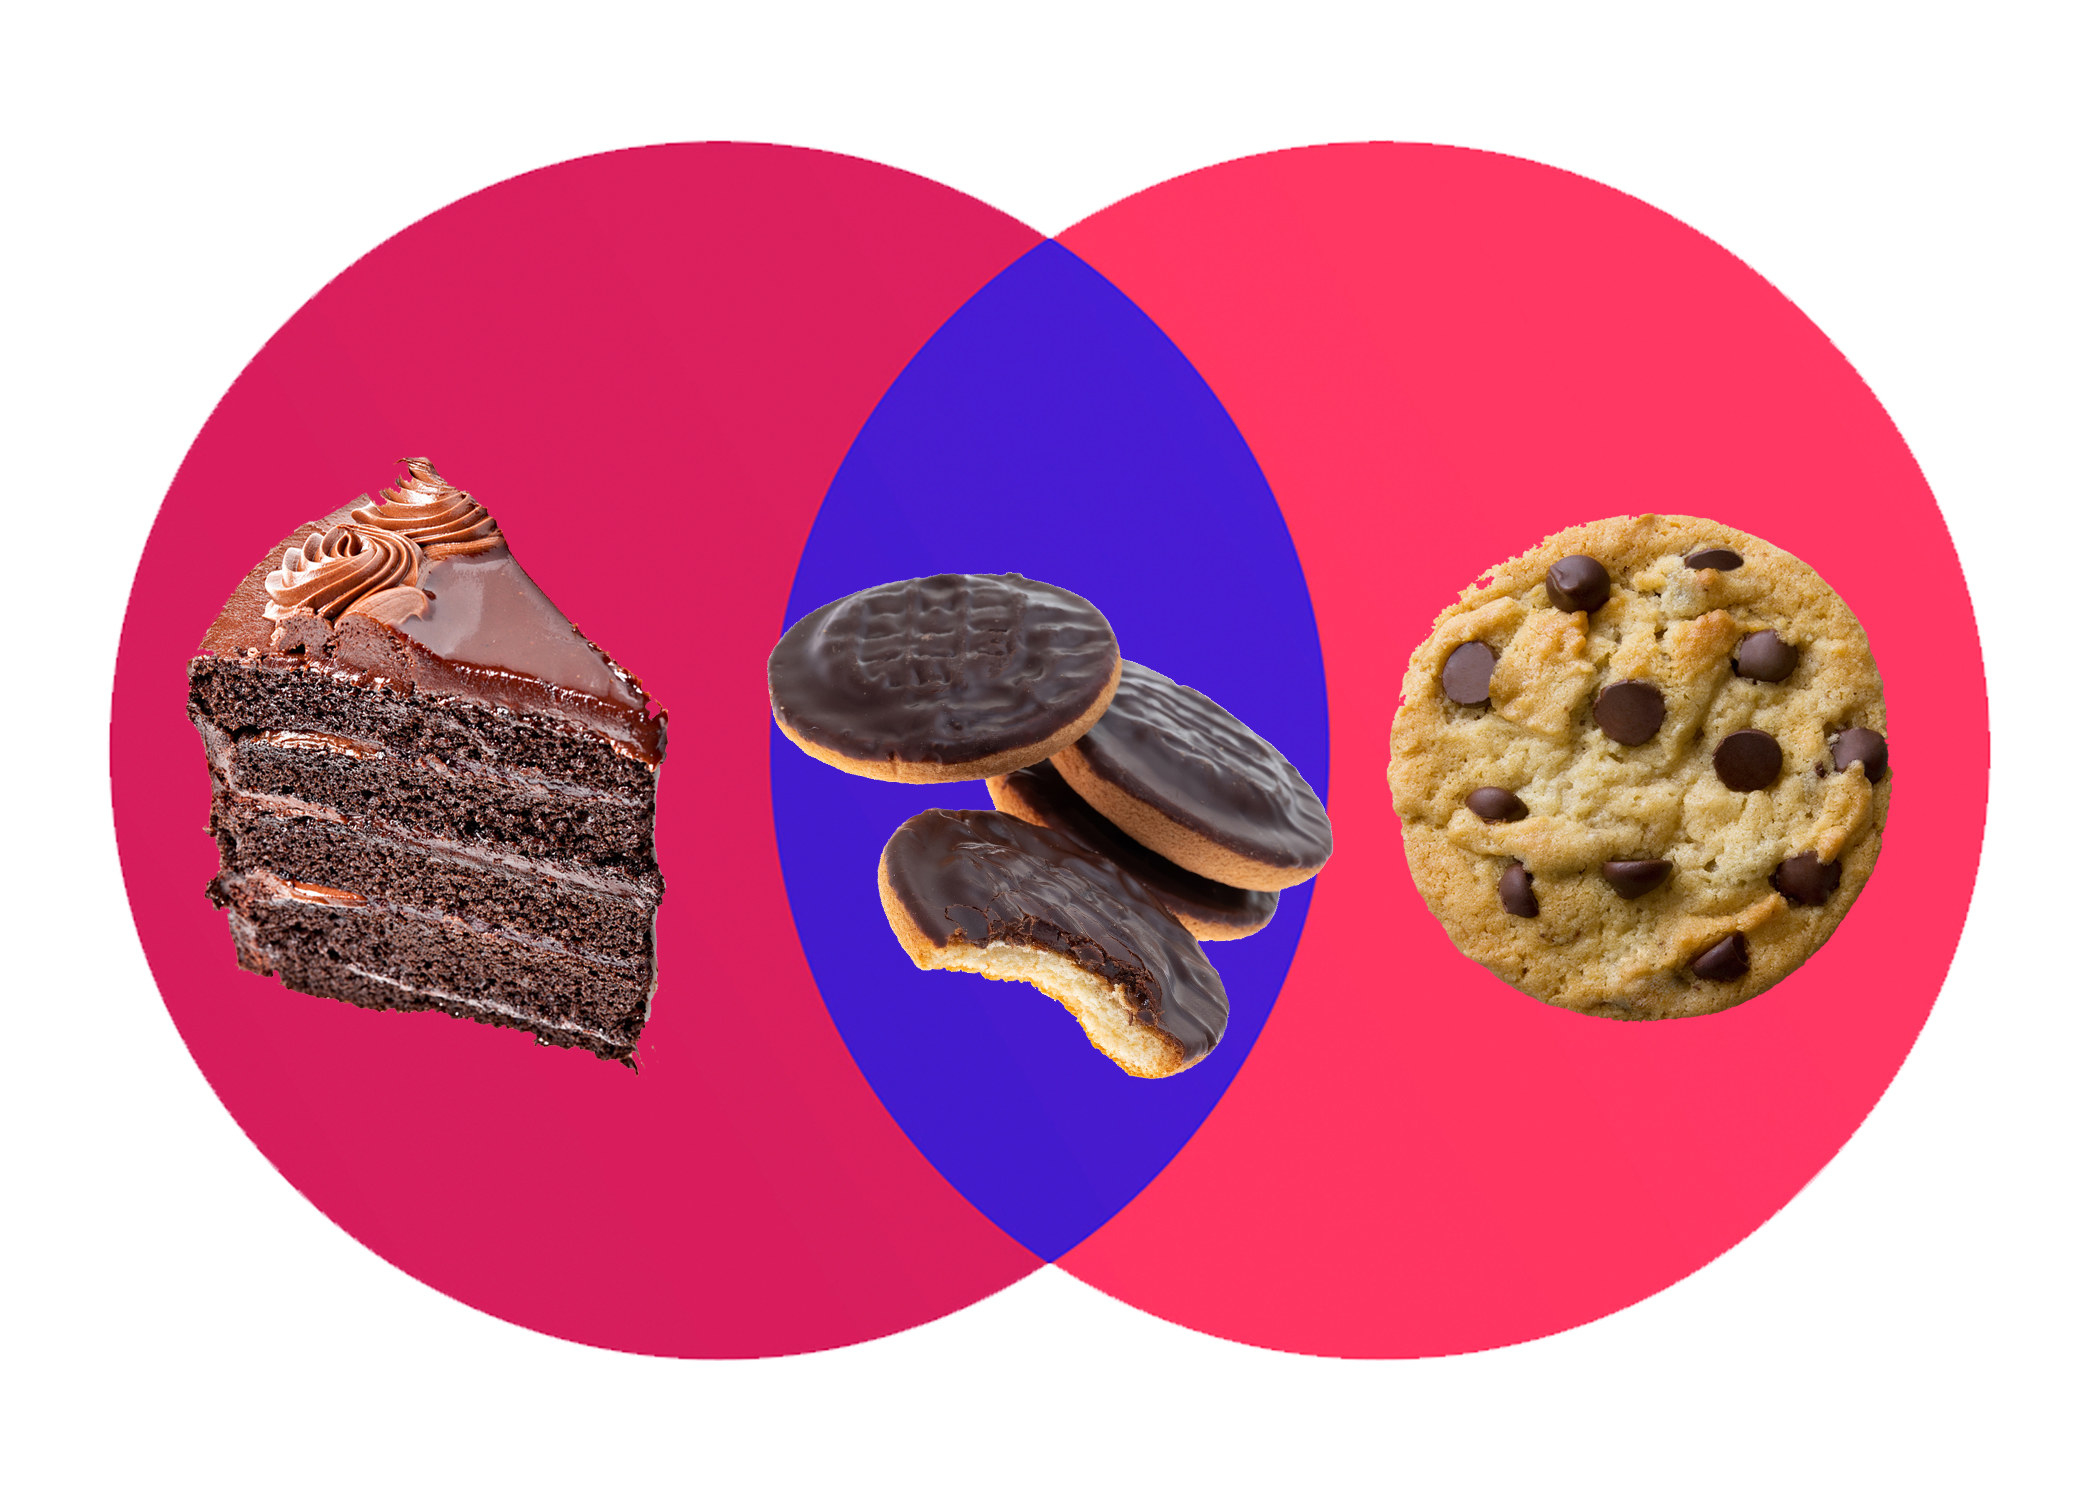 jaffa cake in the middle of a cake/cookie diagram